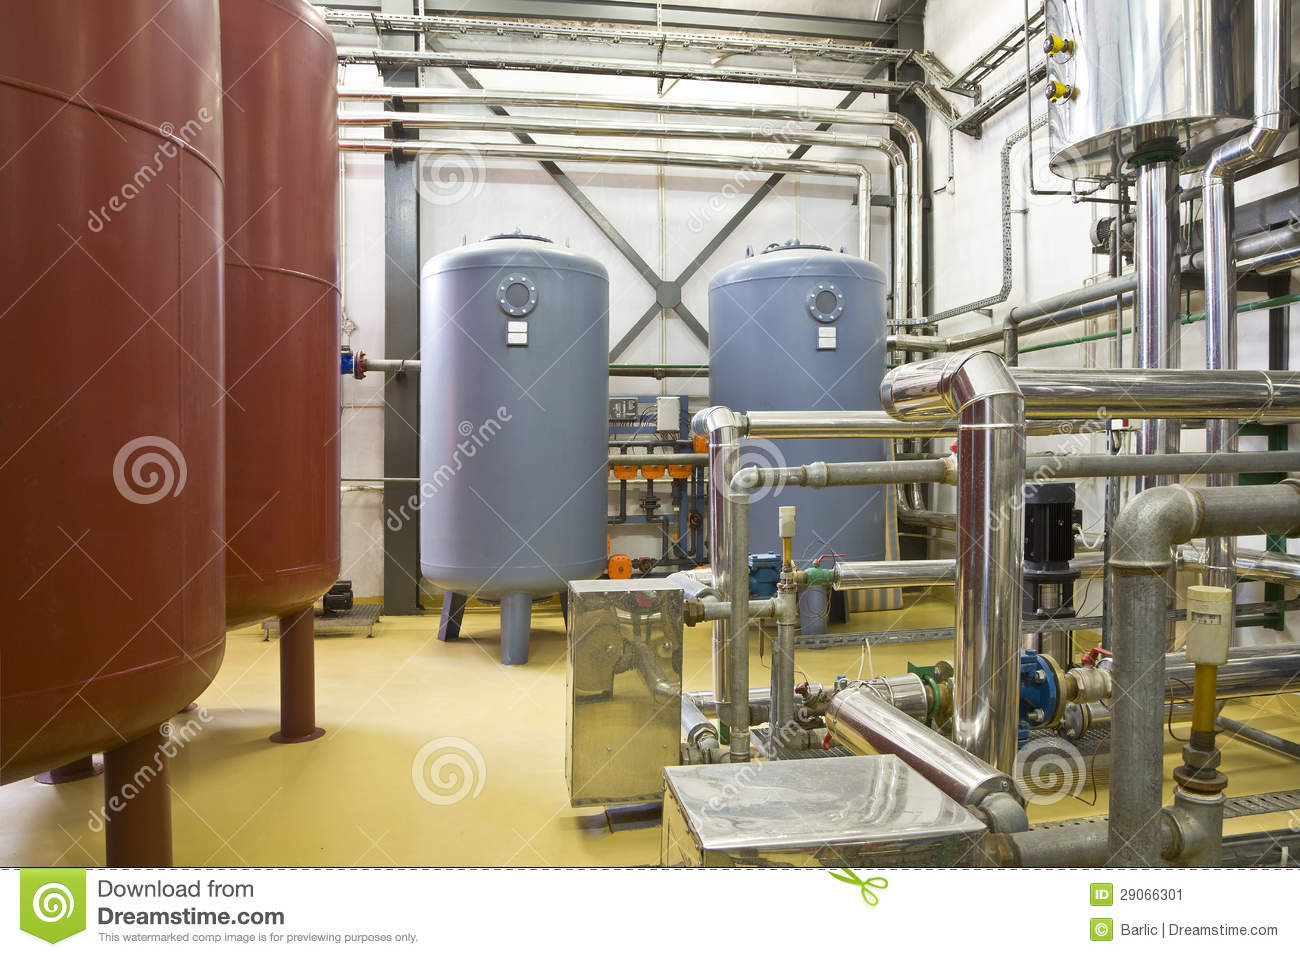 Heating System Boiler Room Stock Image Image 29066301